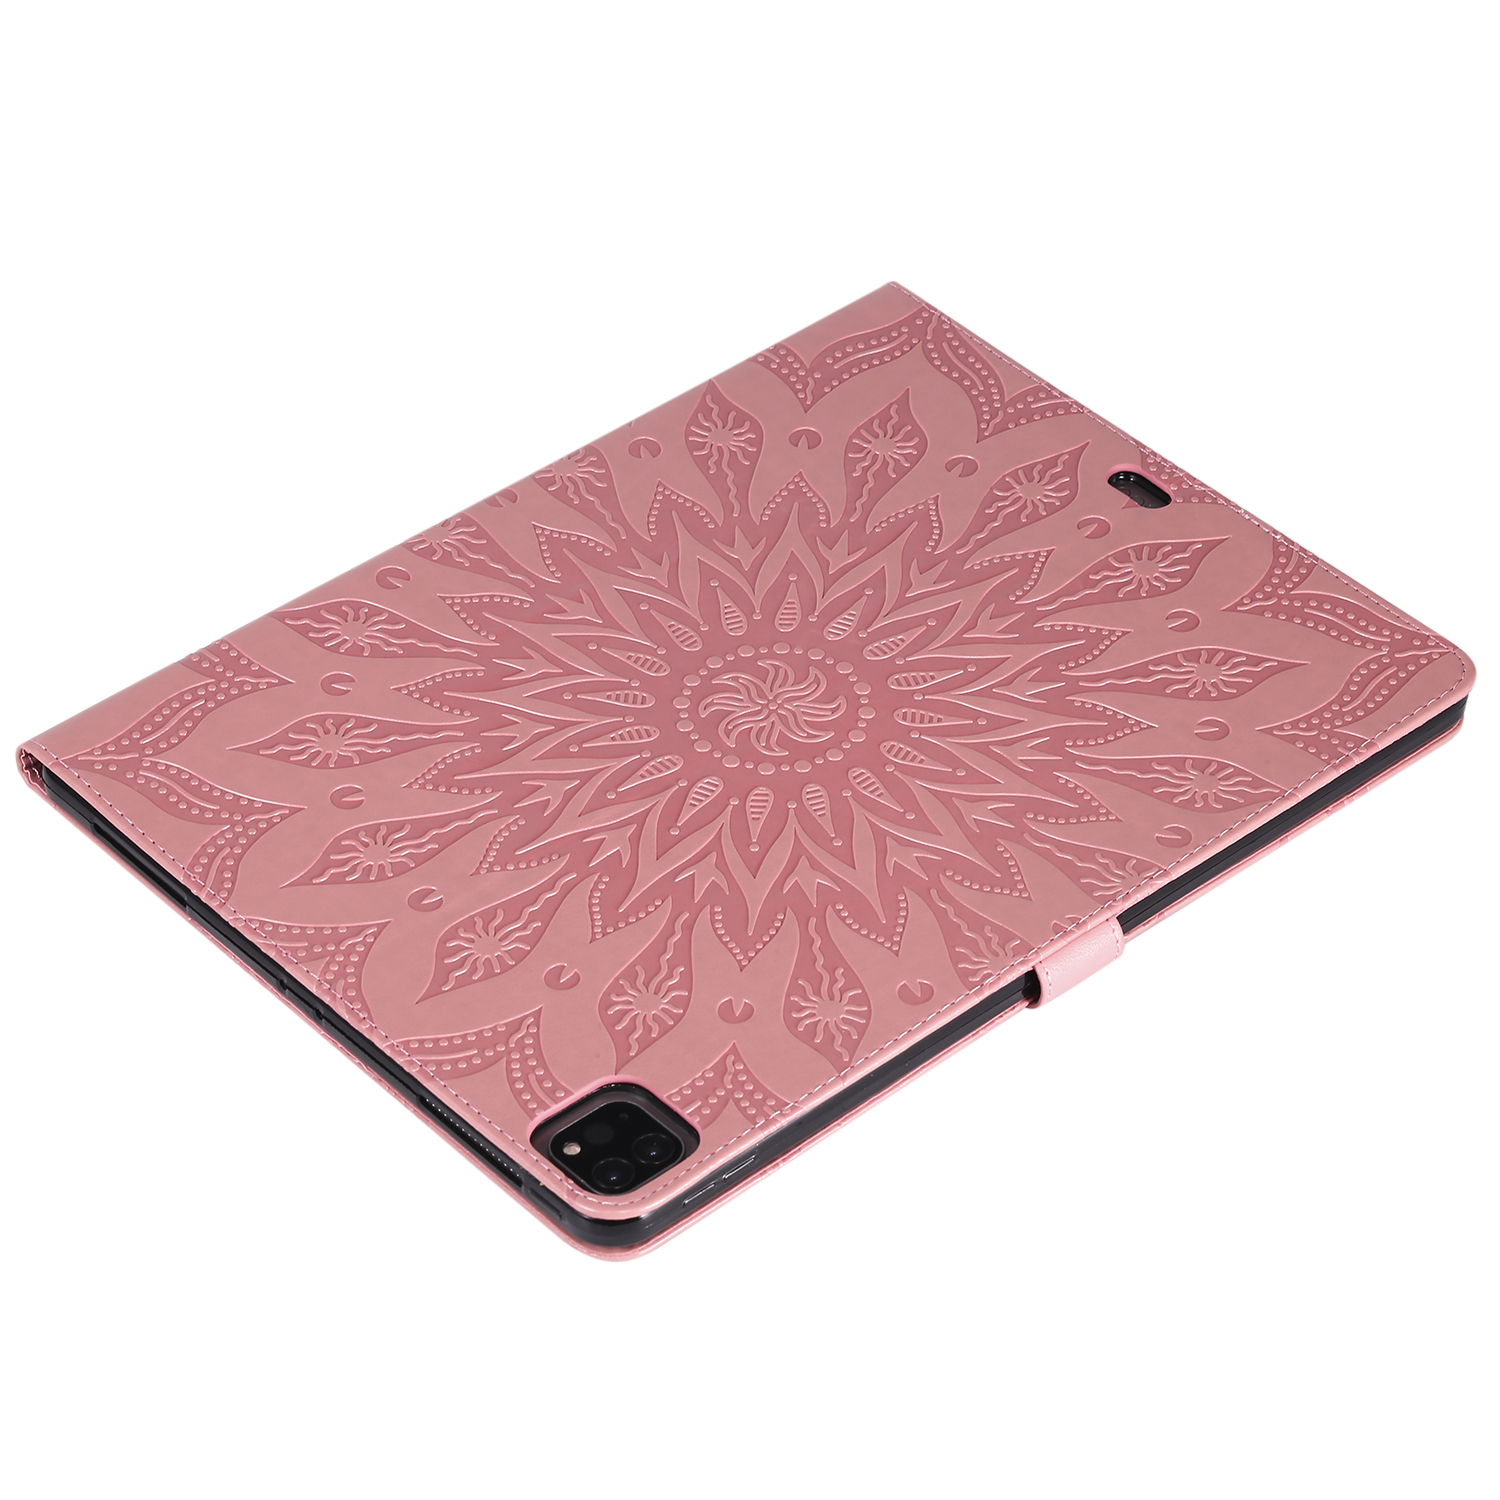 Coque for iPad Pro 12 9 Case 2020 2018 Flip Leather Fashion Wallet Stand Cover for